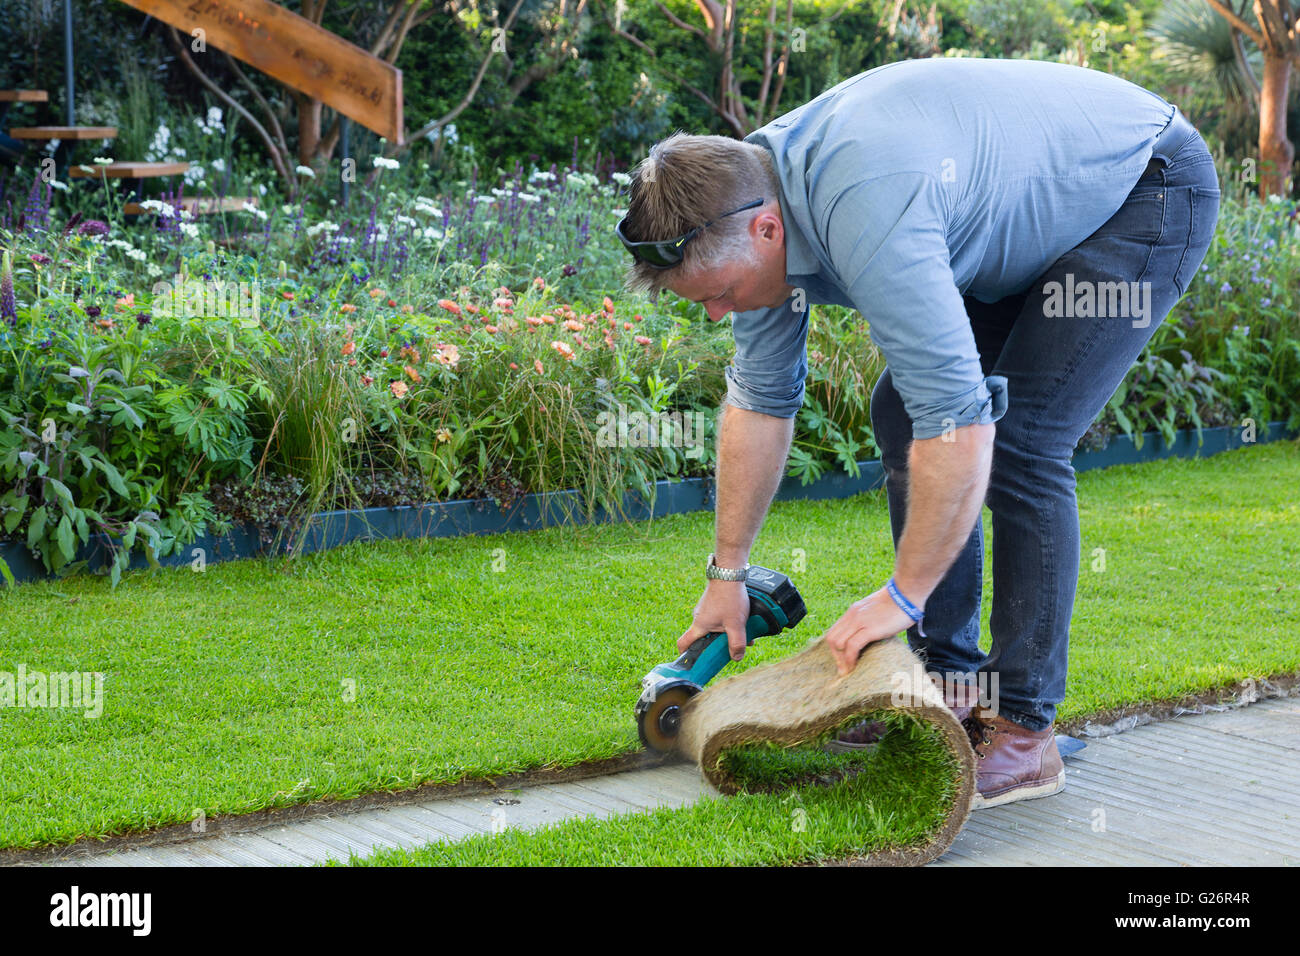 Chelsea Flower Show, London, UK. A worker employs an angle grinder to cut the grass at his stand. - Stock Image